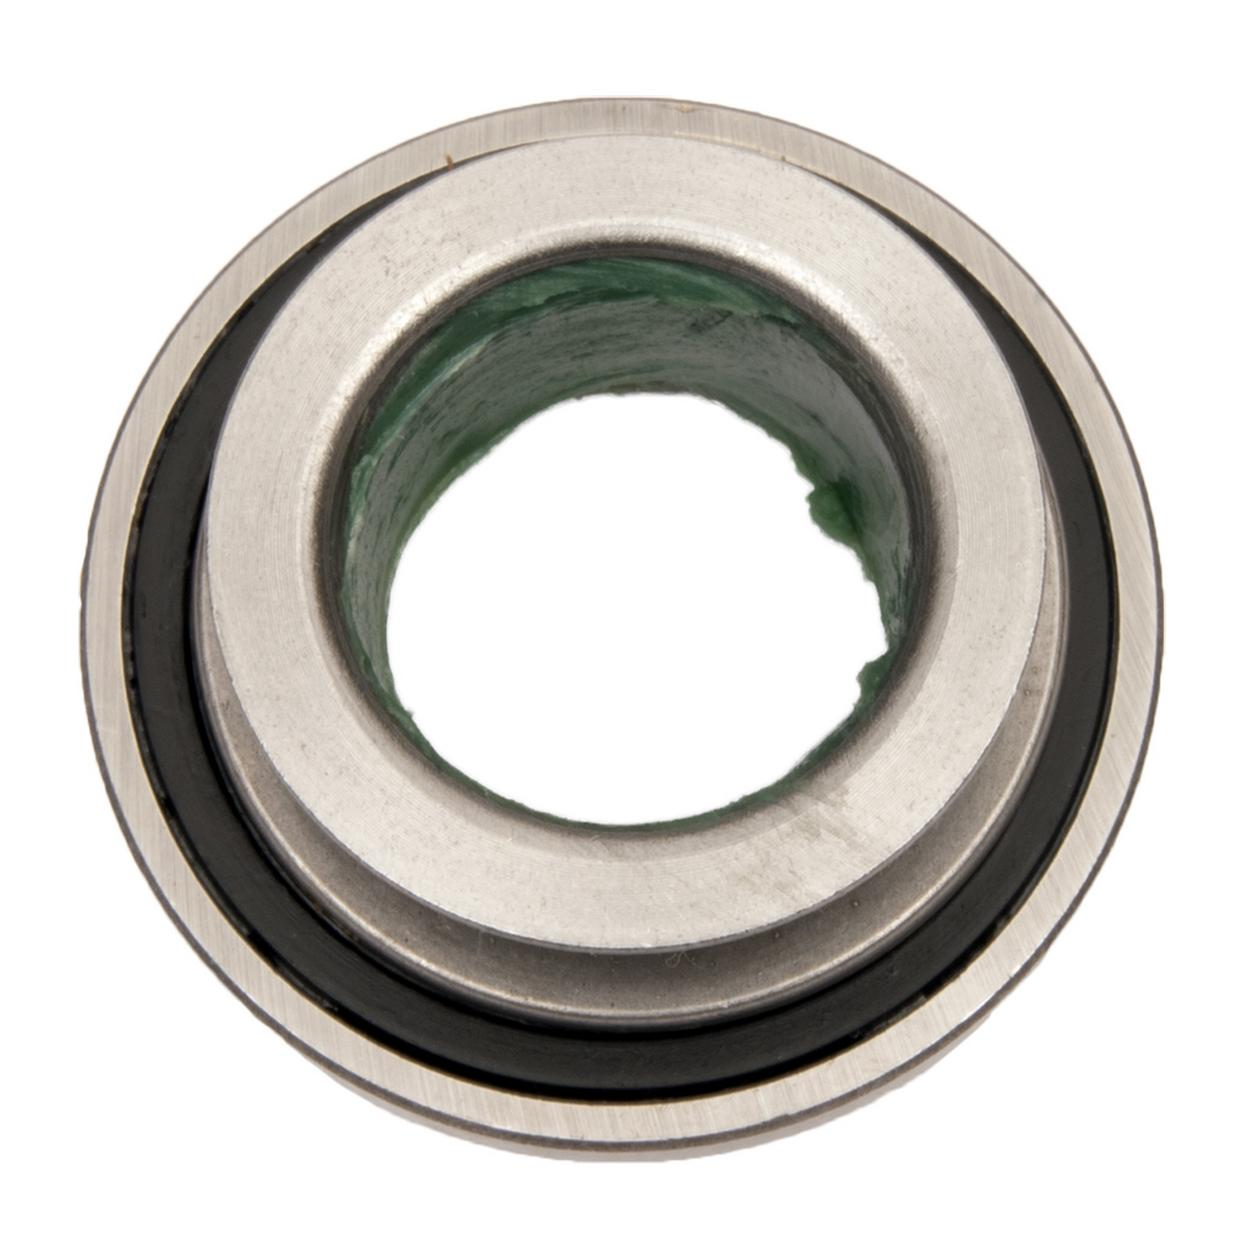 Centerforce N1430 Centerforce  Accessories, Throw Out Bearing / Clutch Release Bearing